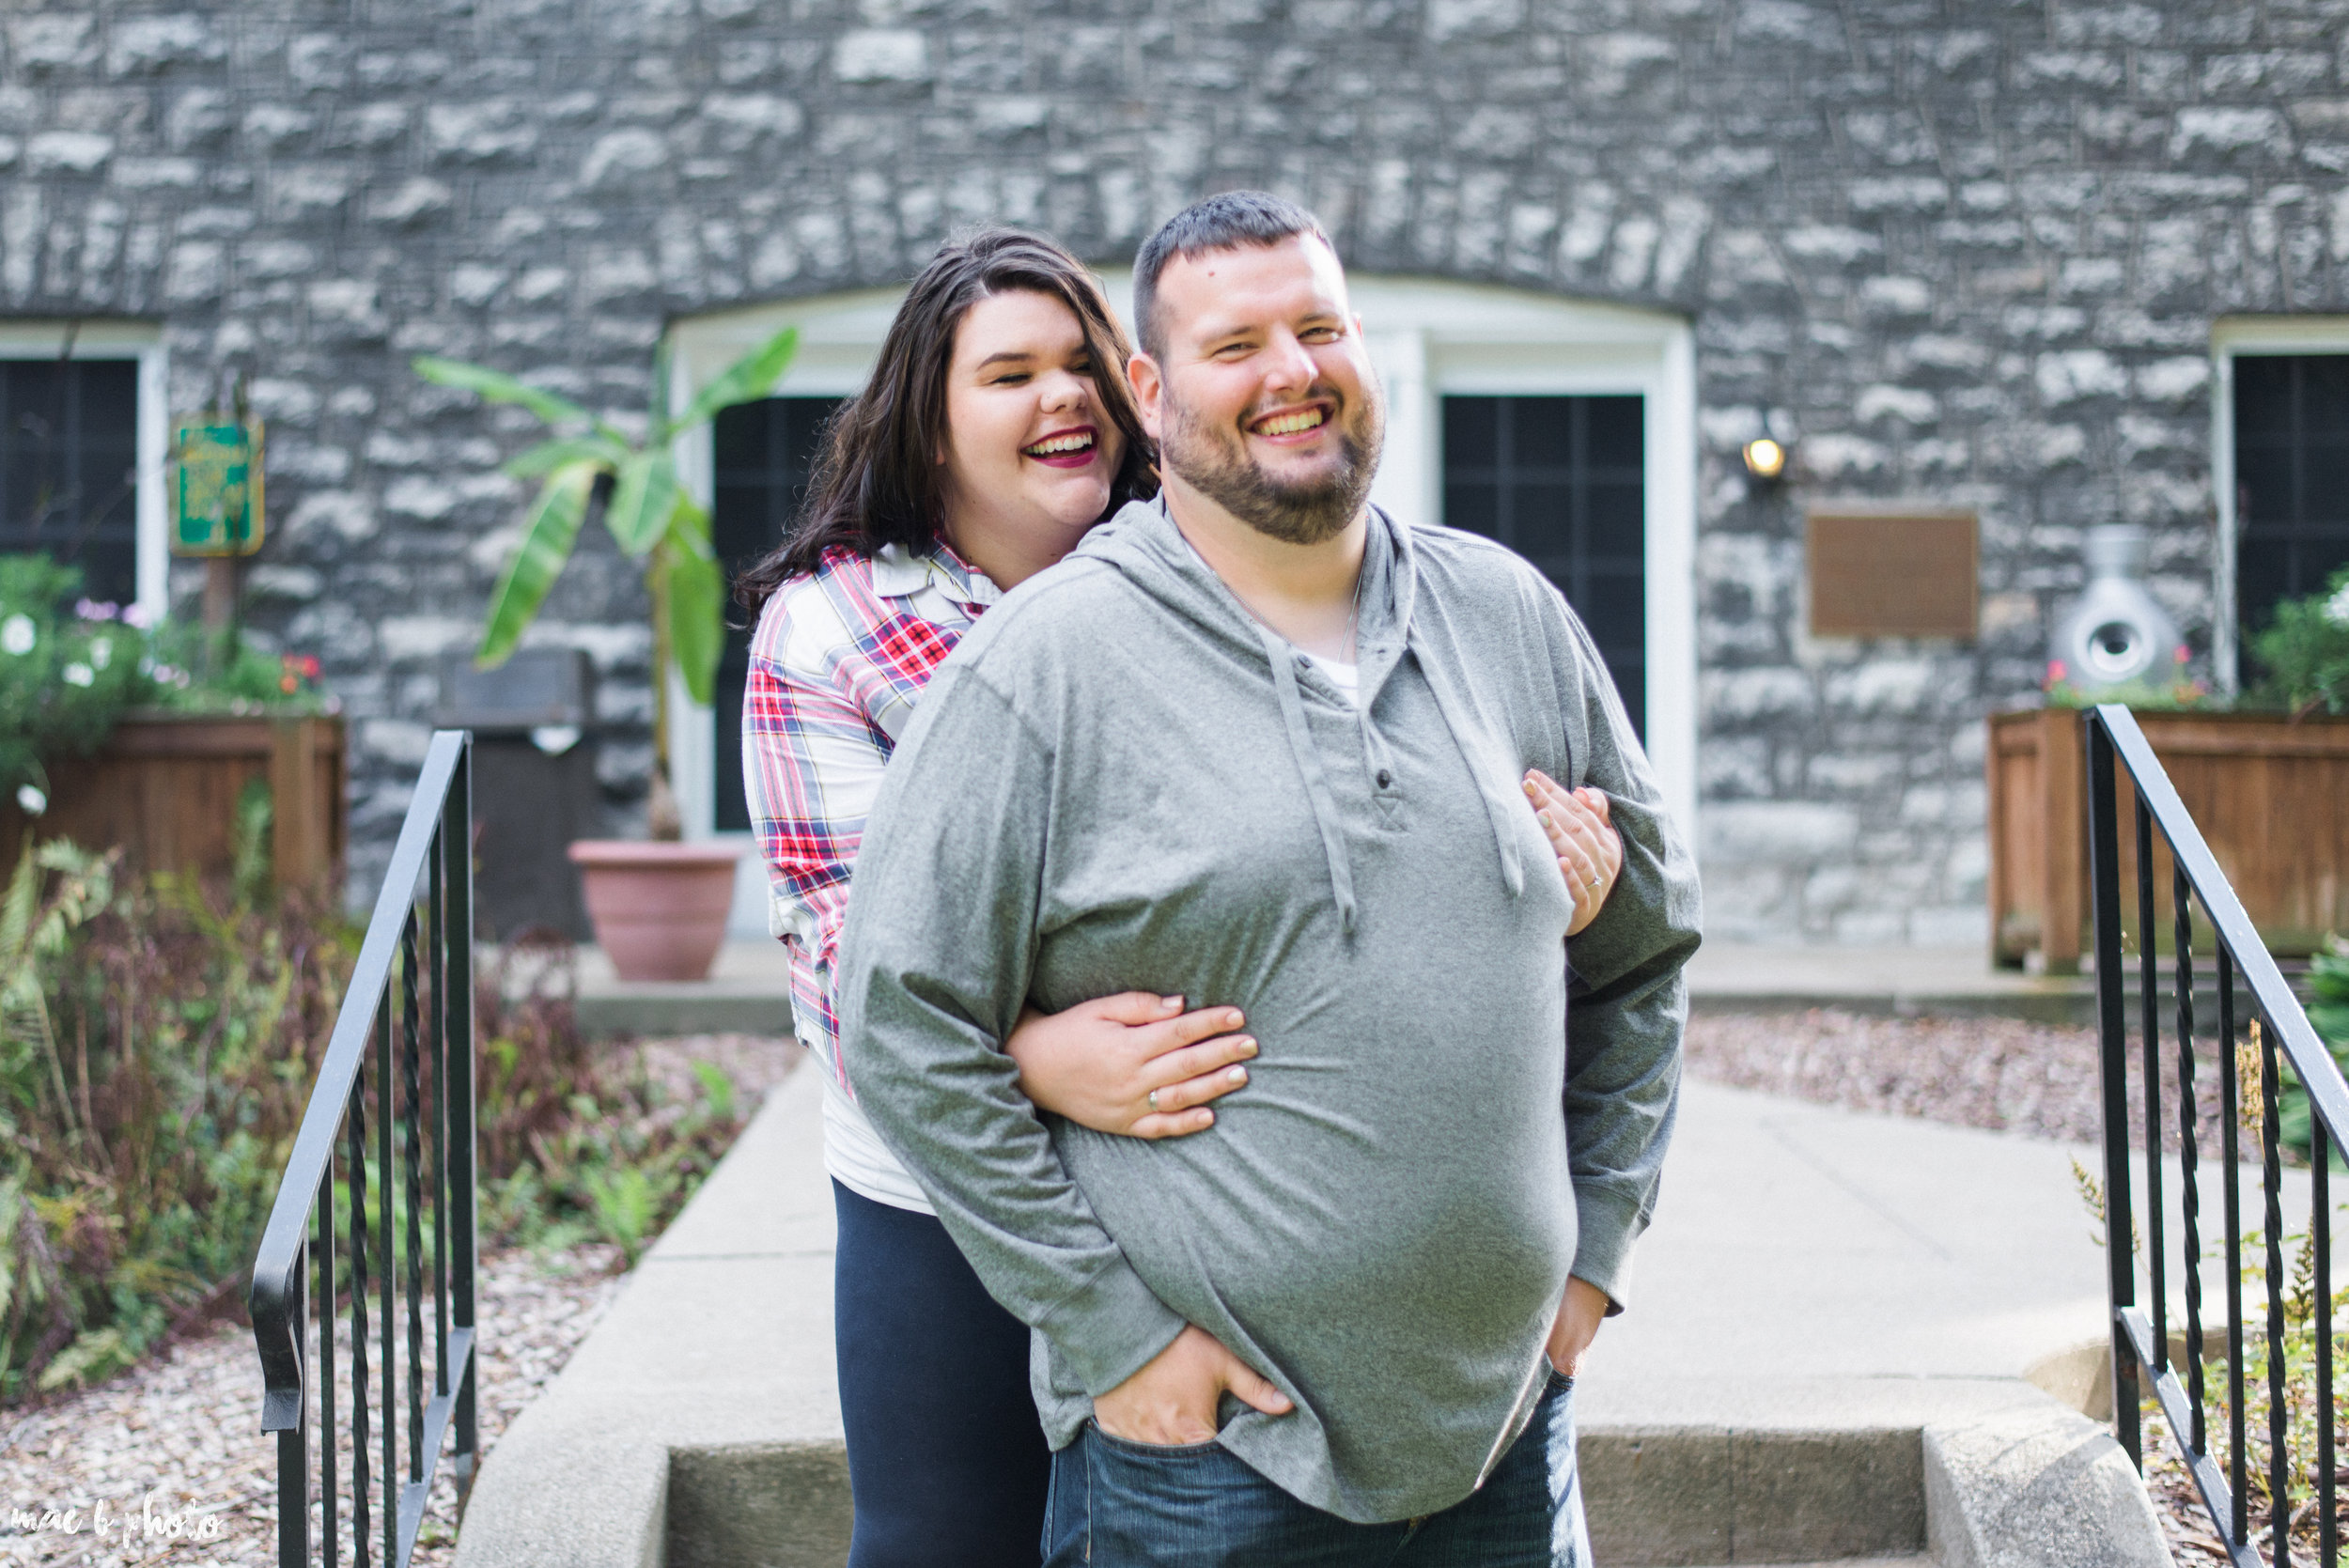 Kristina & Ryan's Summer Mill Creek Park Engagement Session in Youngstown, Ohio-1.jpg